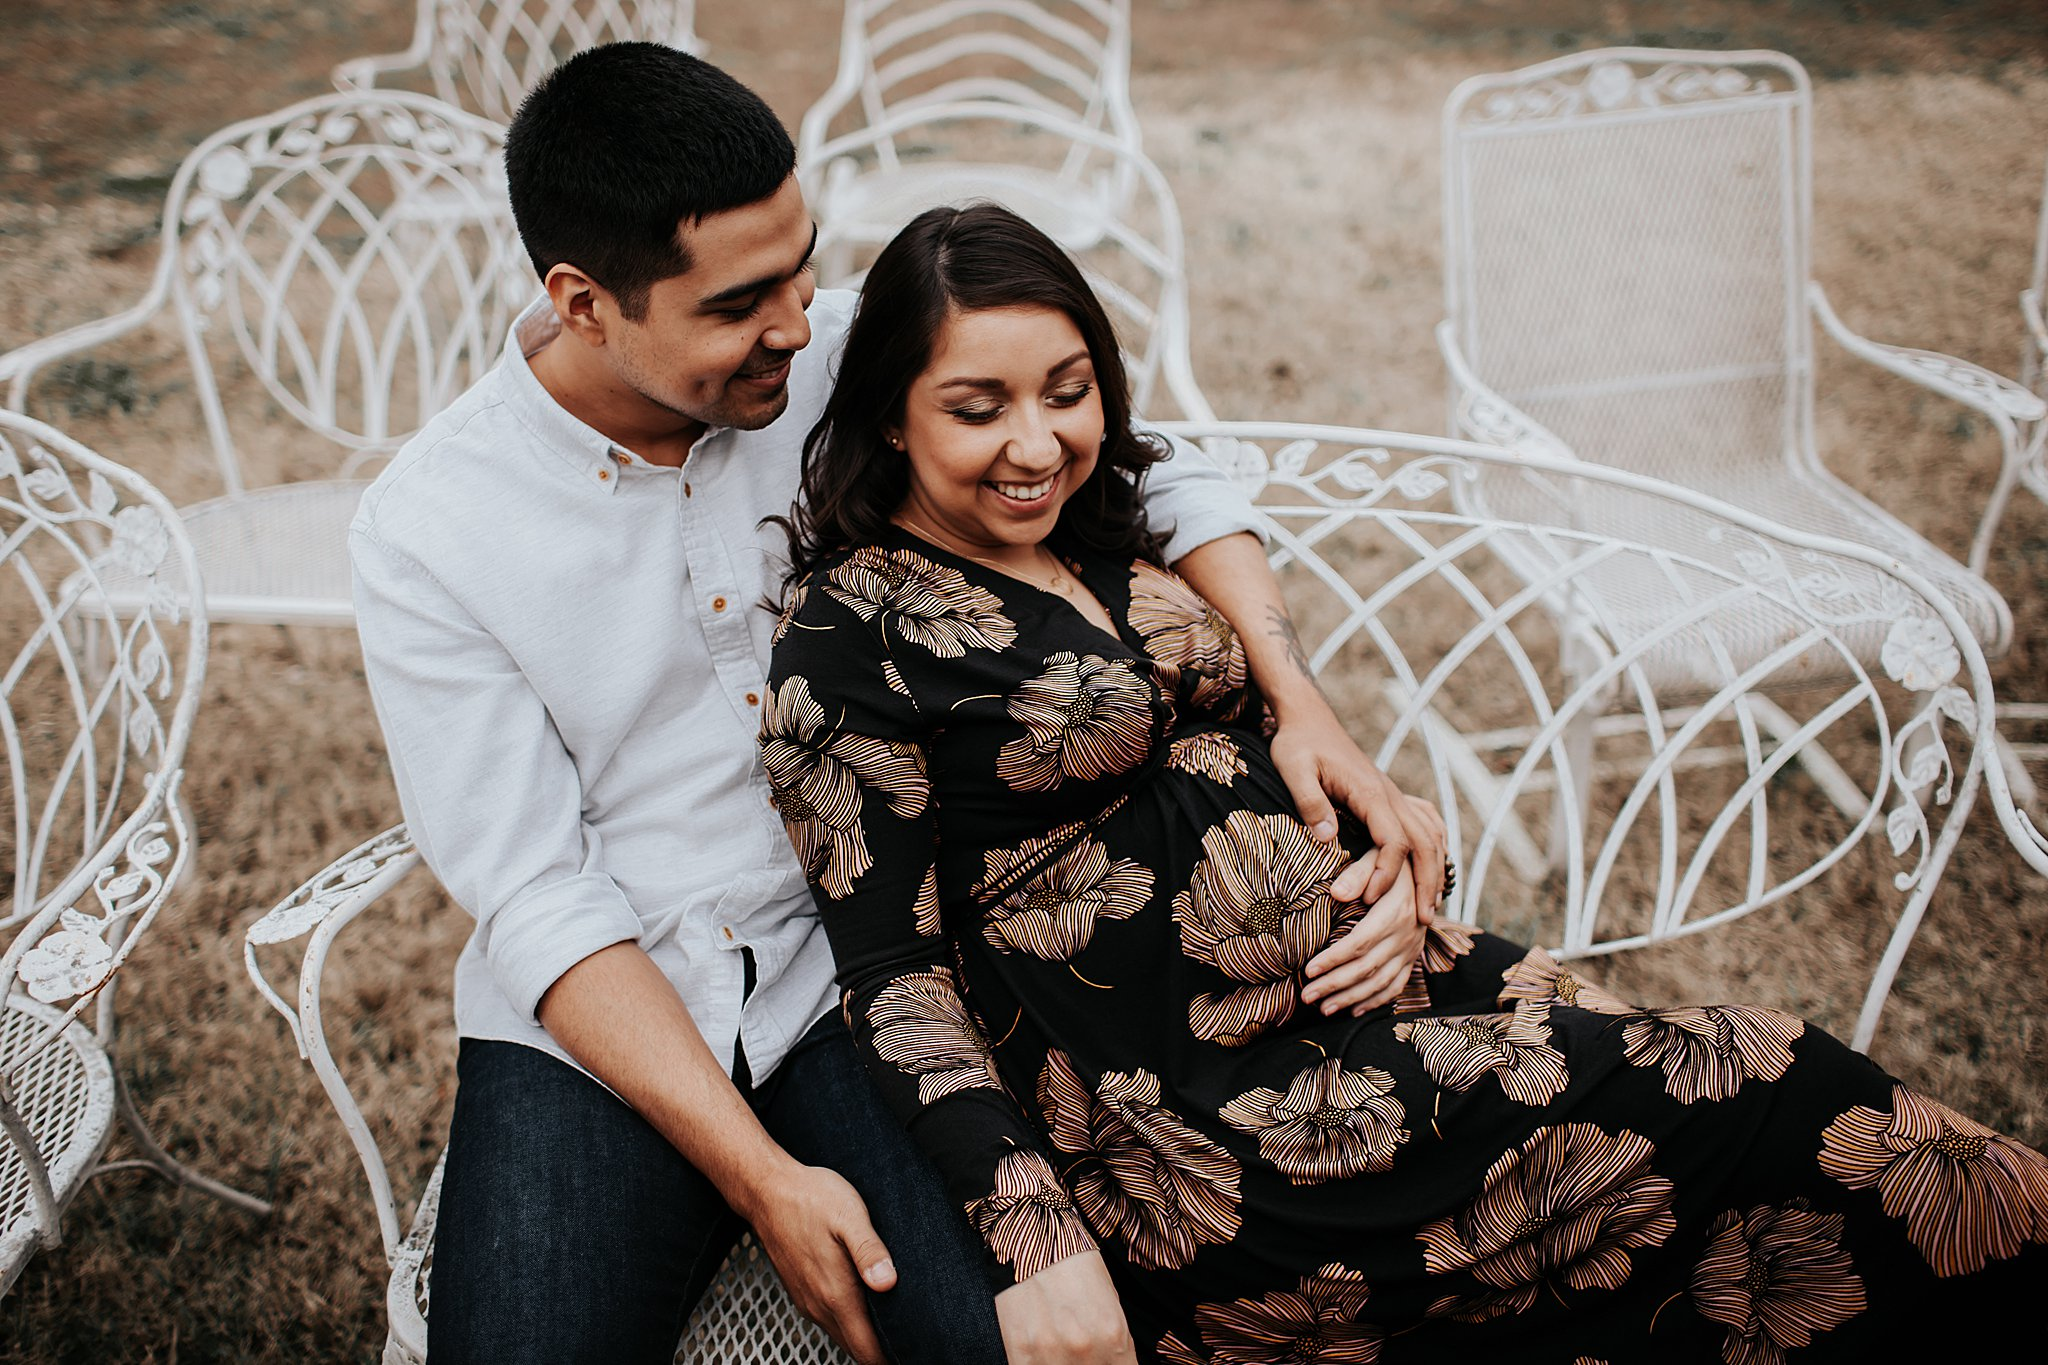 Julia-San-Antonio-Maternity-Photographer-88_WEB.jpg